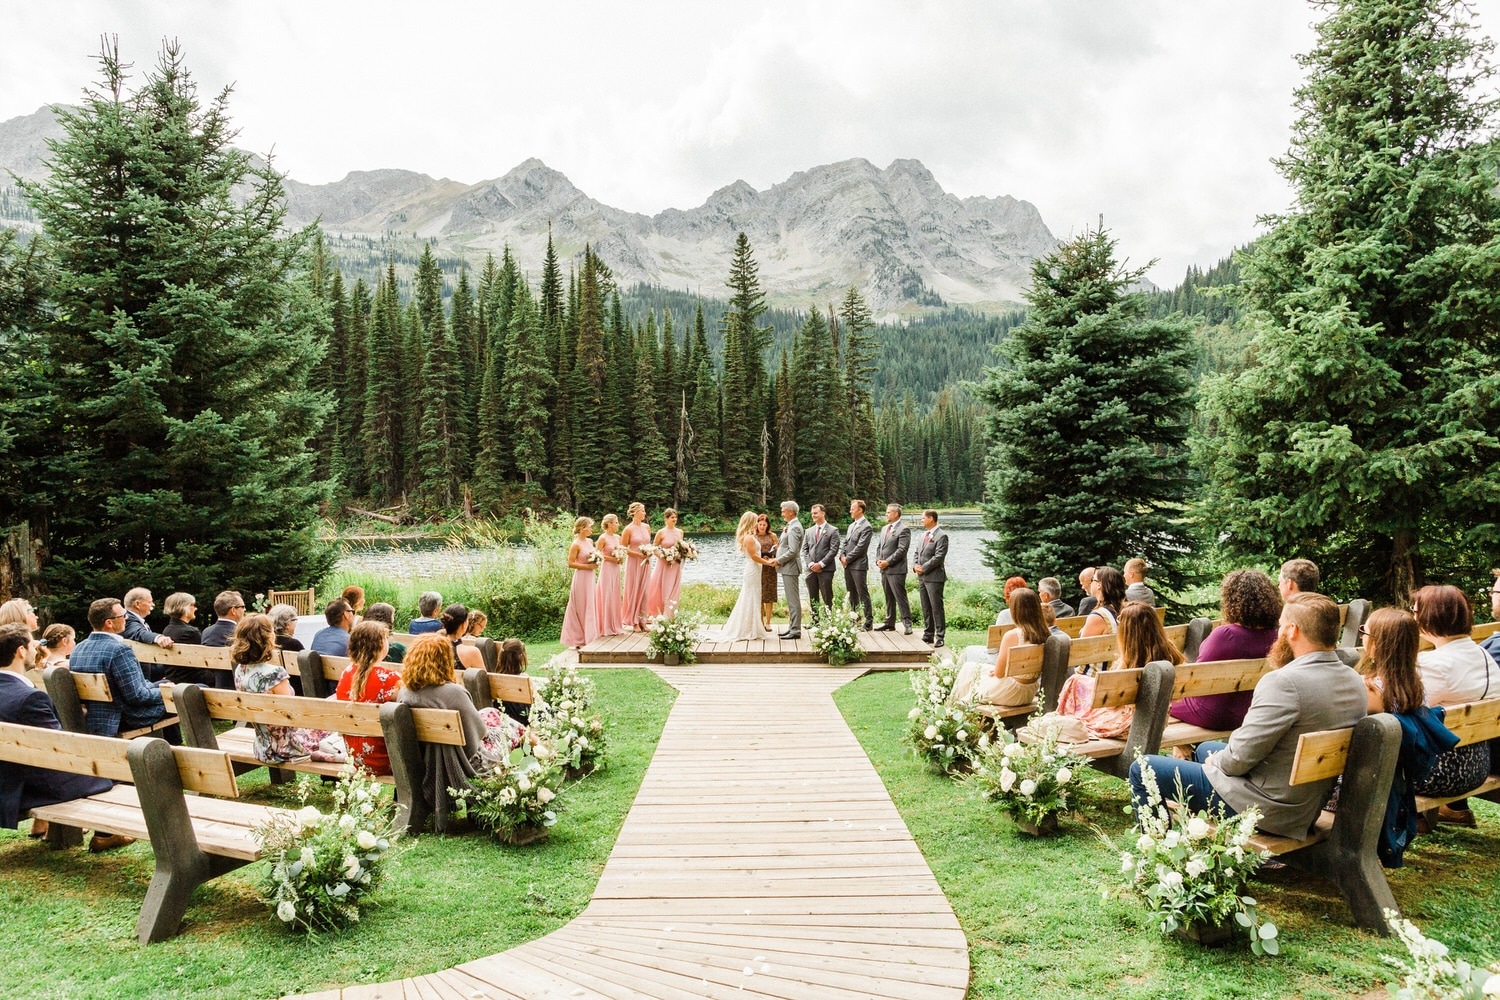 Island Lake Lodge wedding ceremony in British Columbia